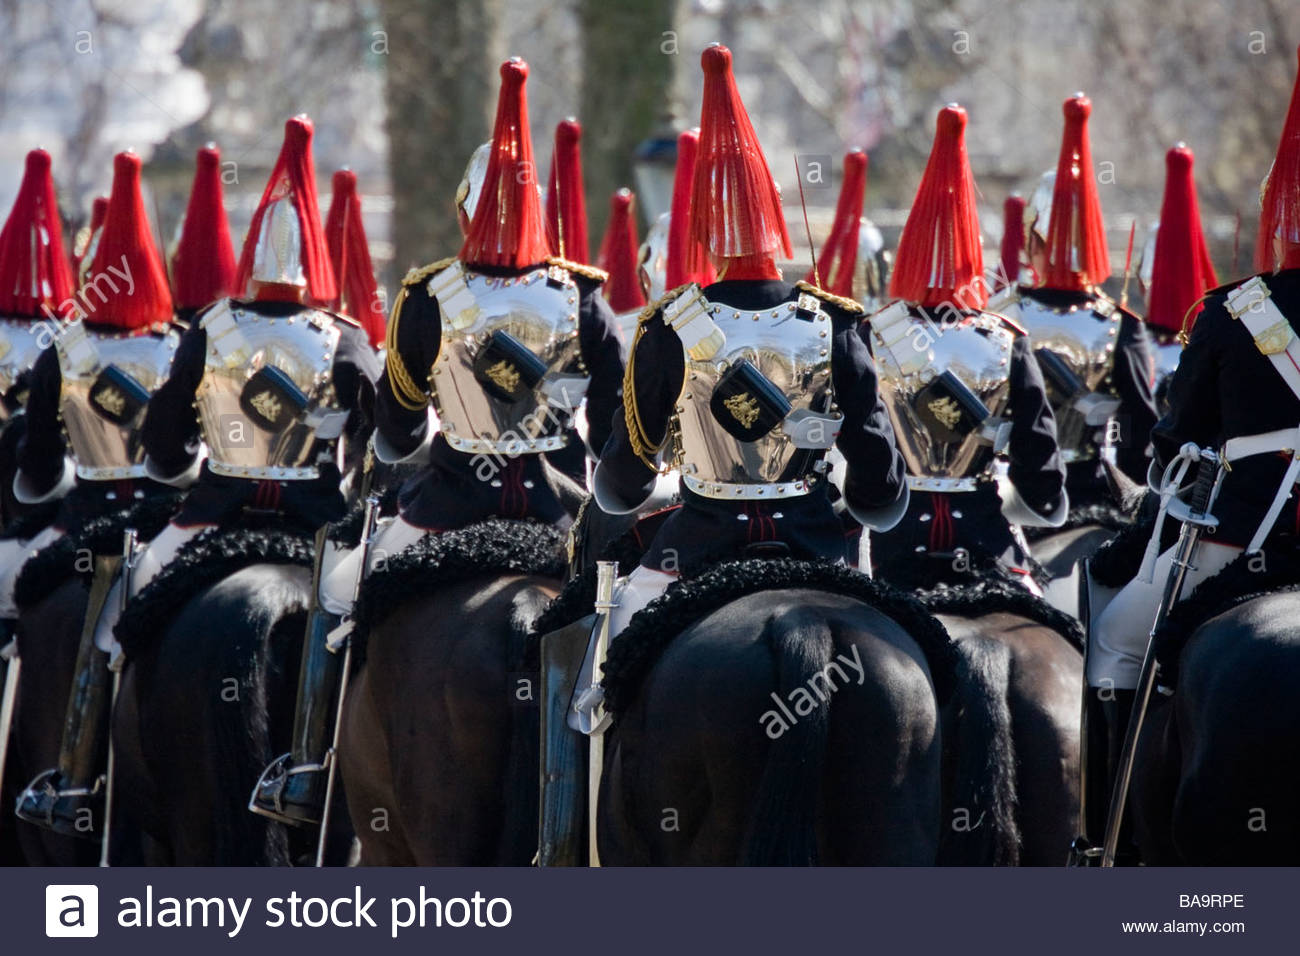 Horseguards riding to Horseguards Parade for the state visit of the Mexican president, London, UK - Stock Image